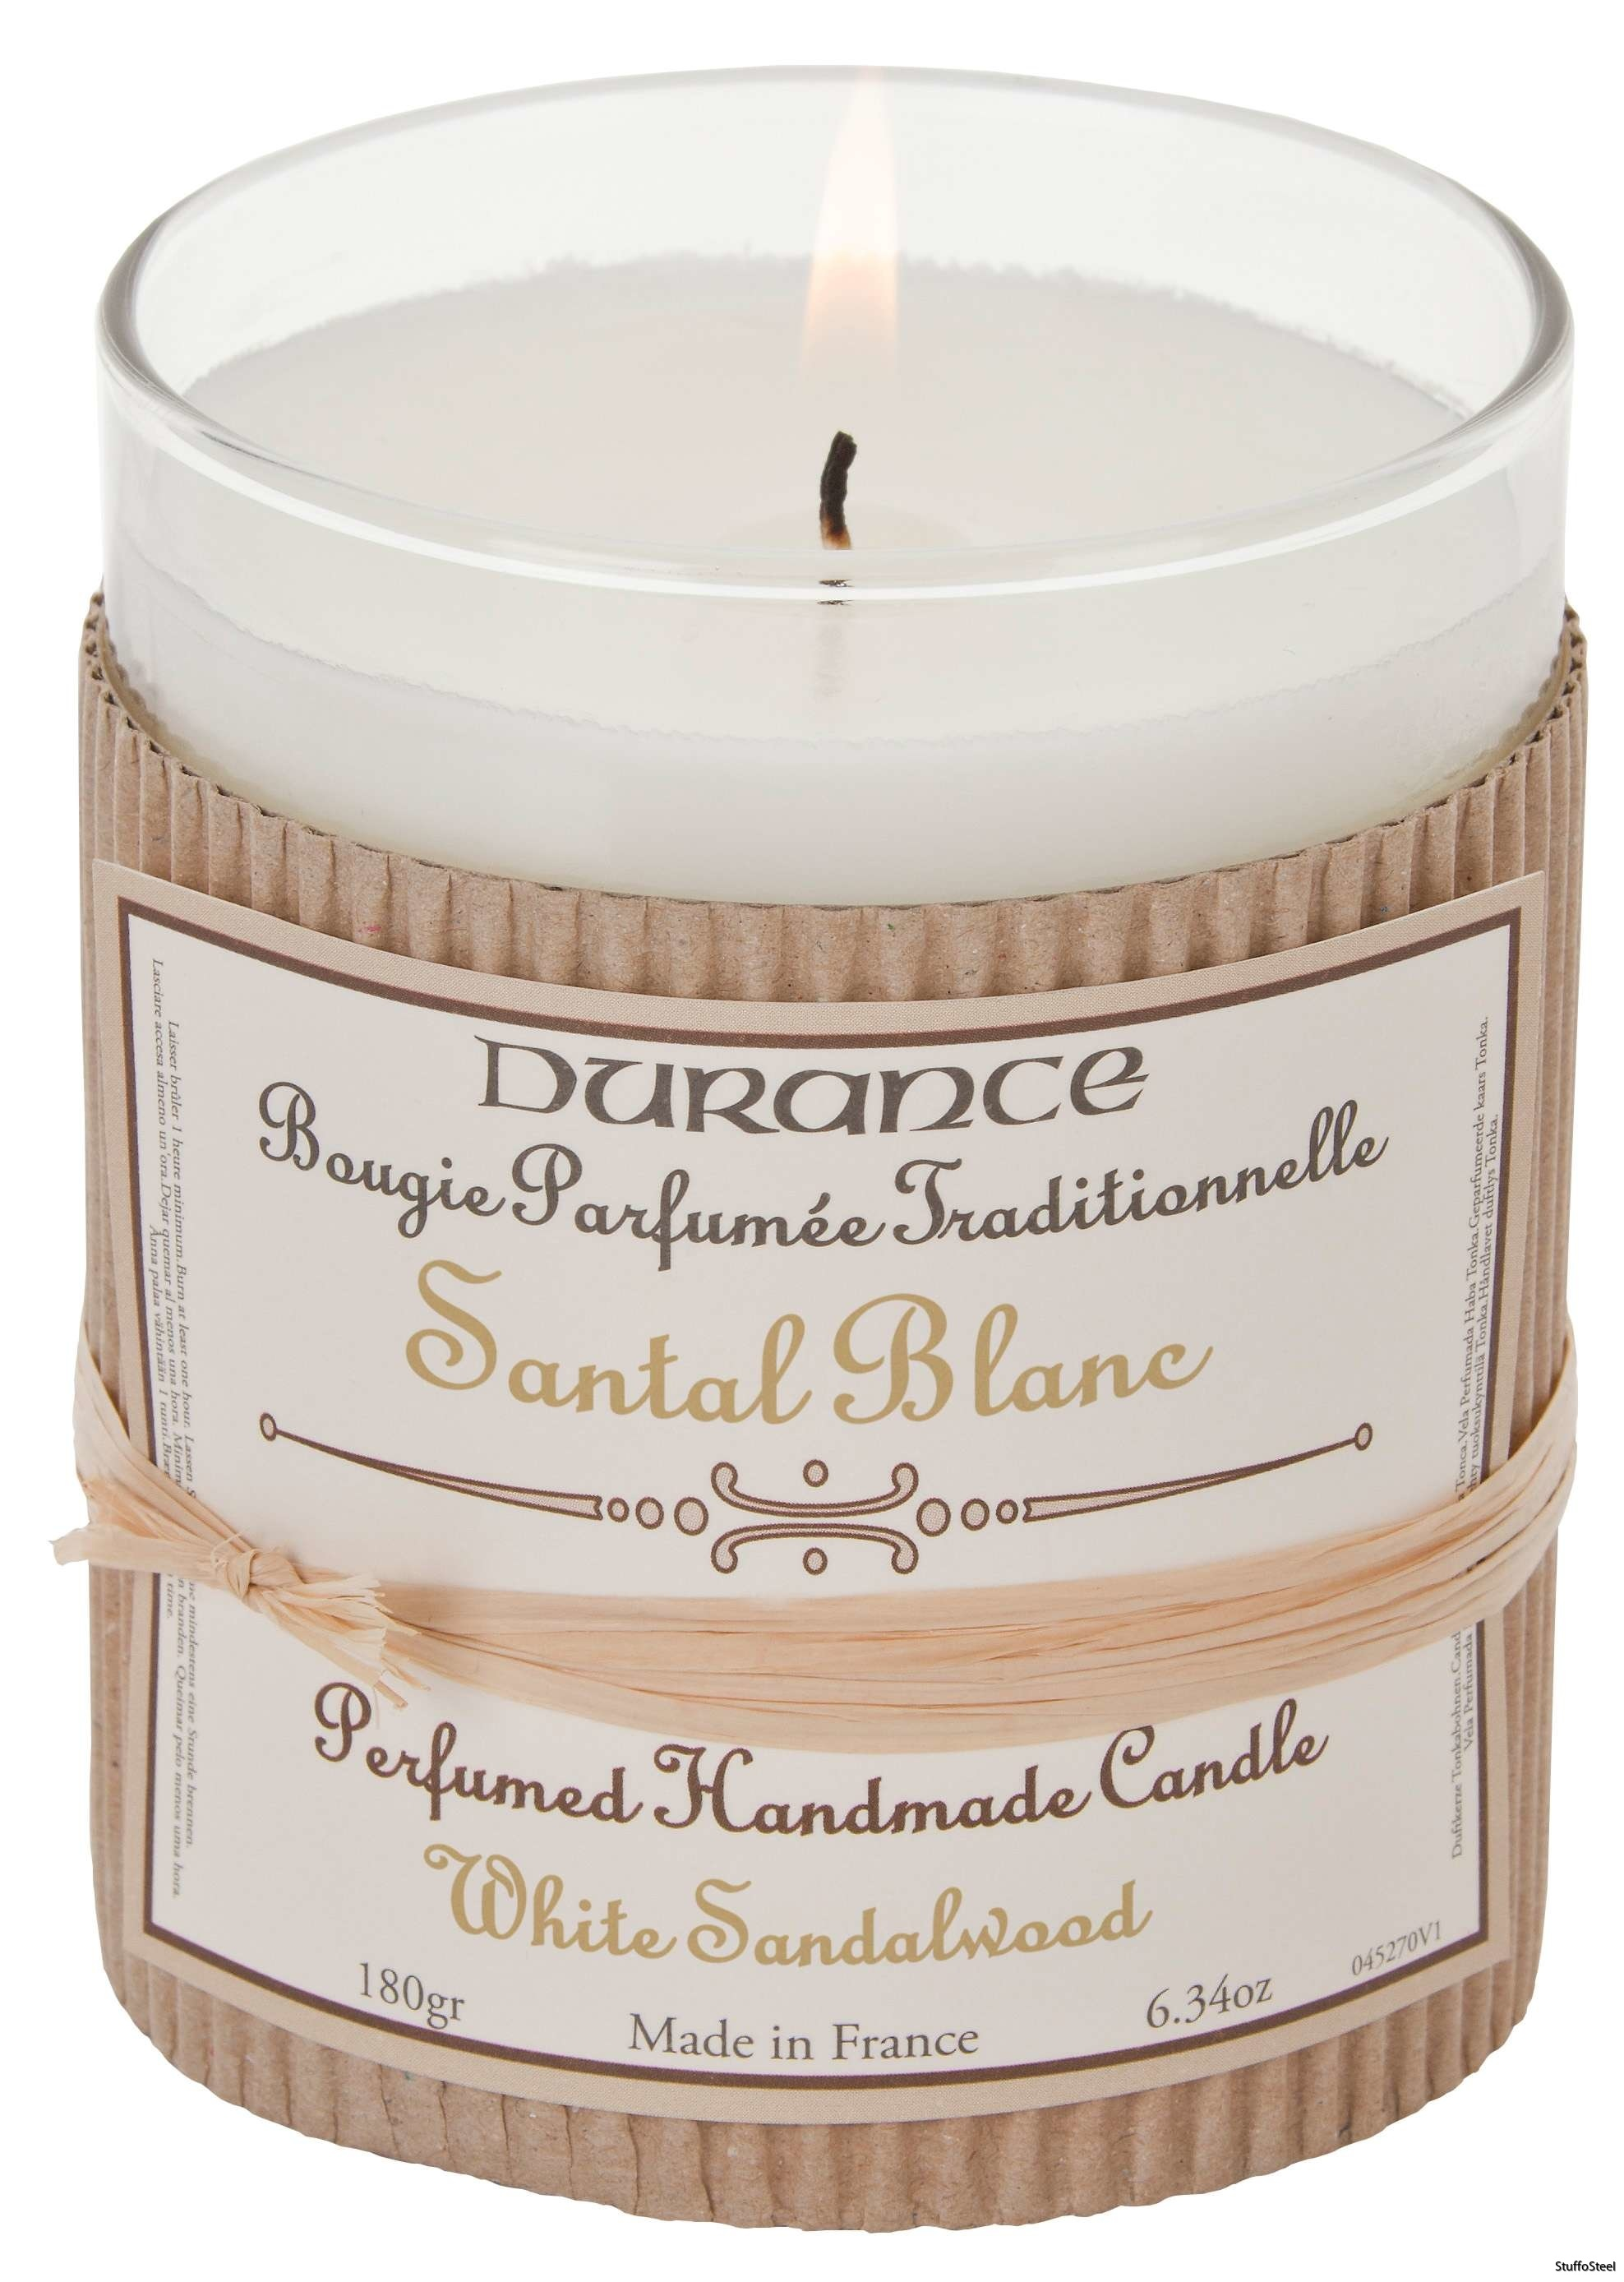 Handcraft Candle White Sandalwood 180g